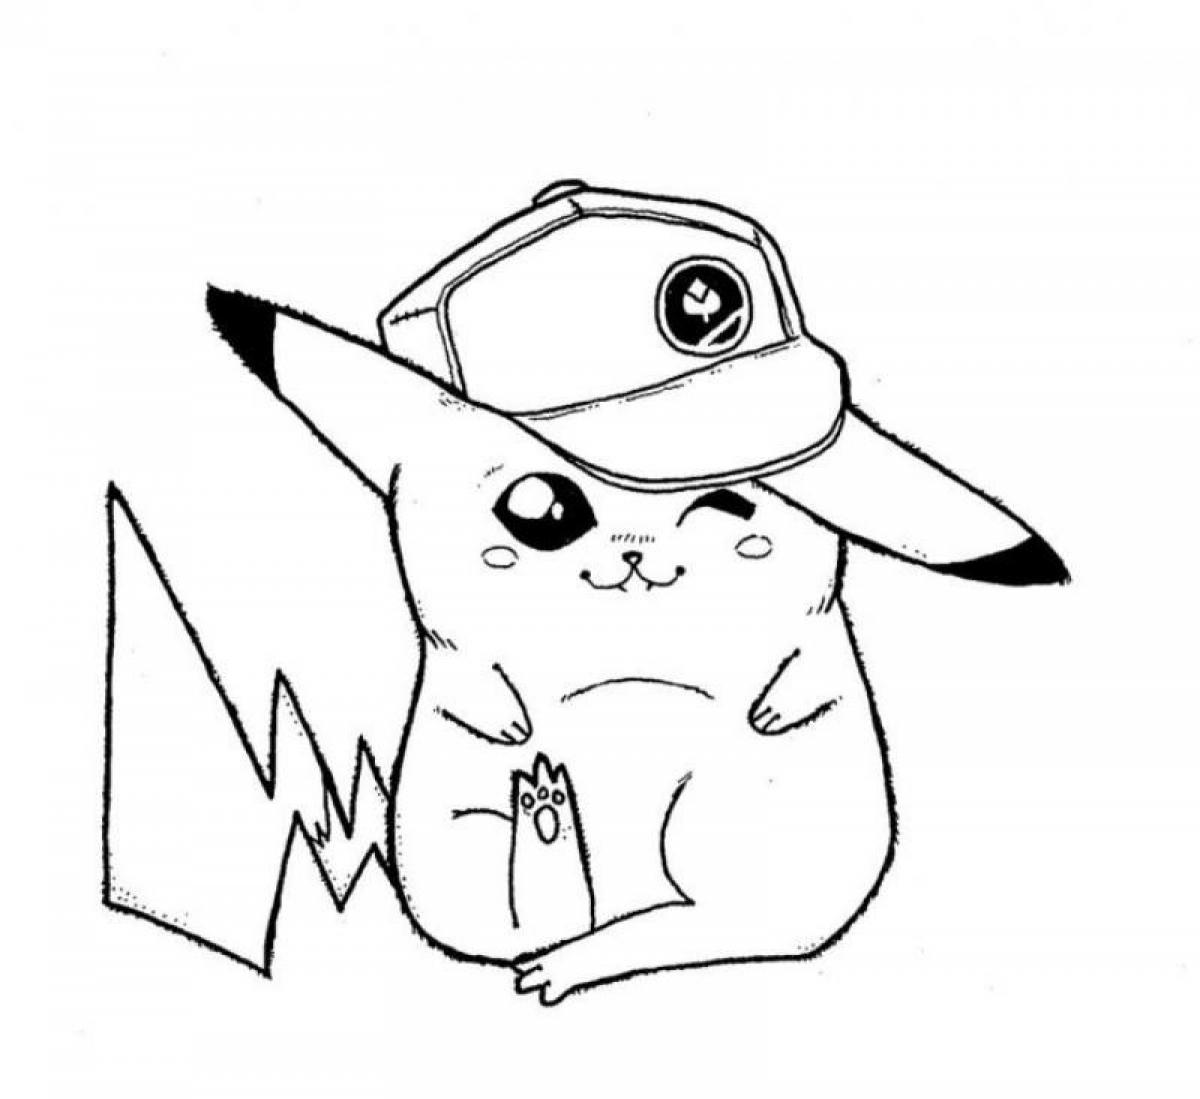 1200x1099 Pikachu Pokemon Coloring Pages And Print Pikachu Coloring Pages